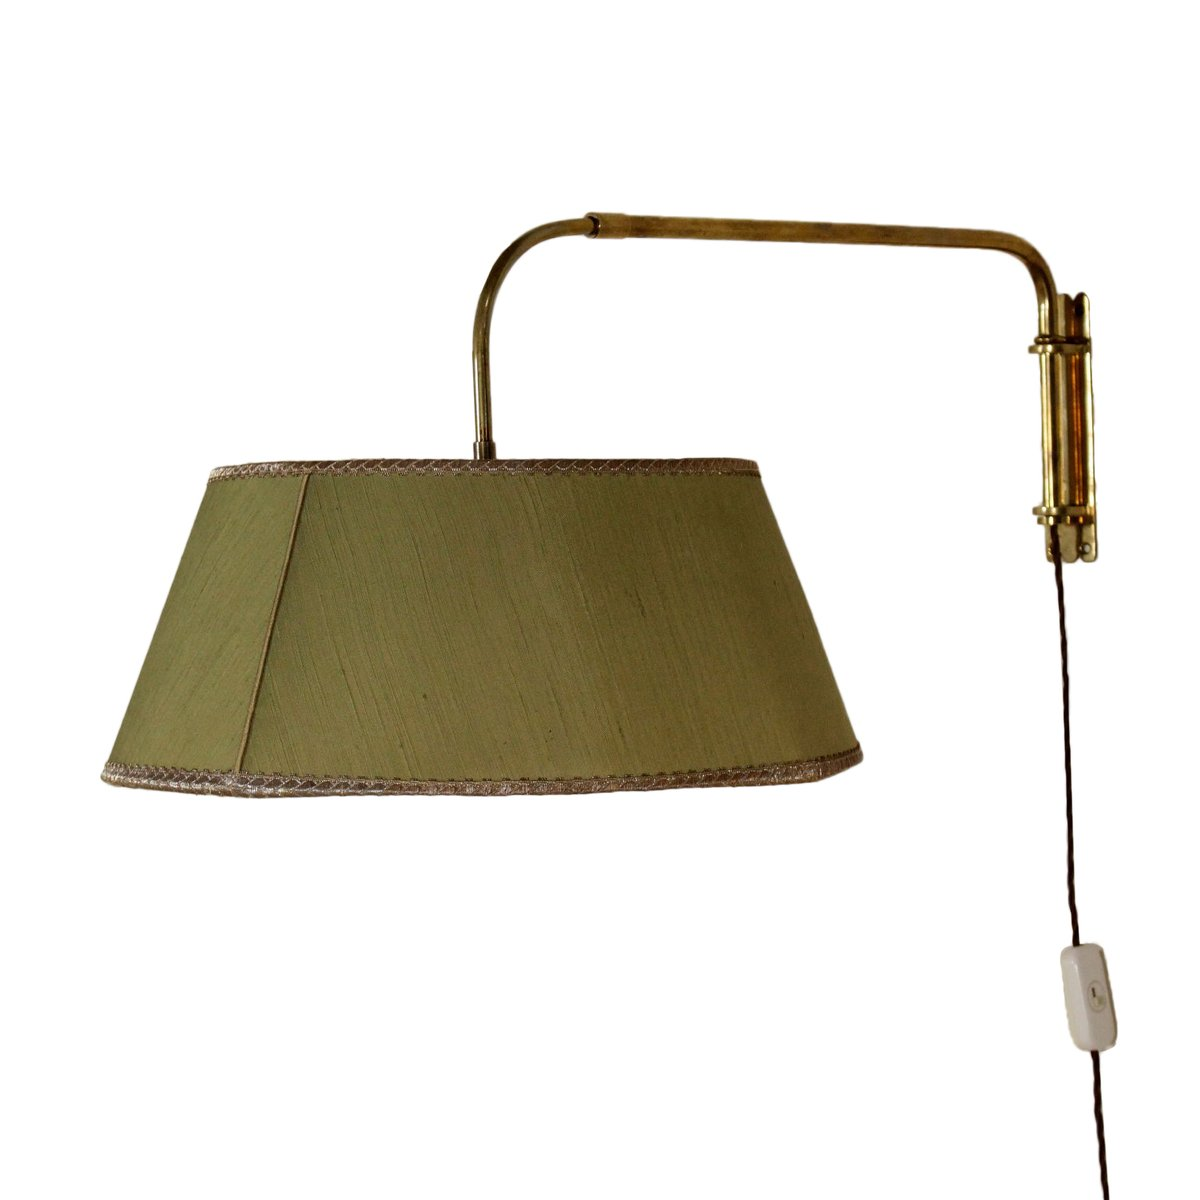 Wall Mounted Extendable Lamp : Extendable Brass Wall Lamp, 1950s for sale at Pamono